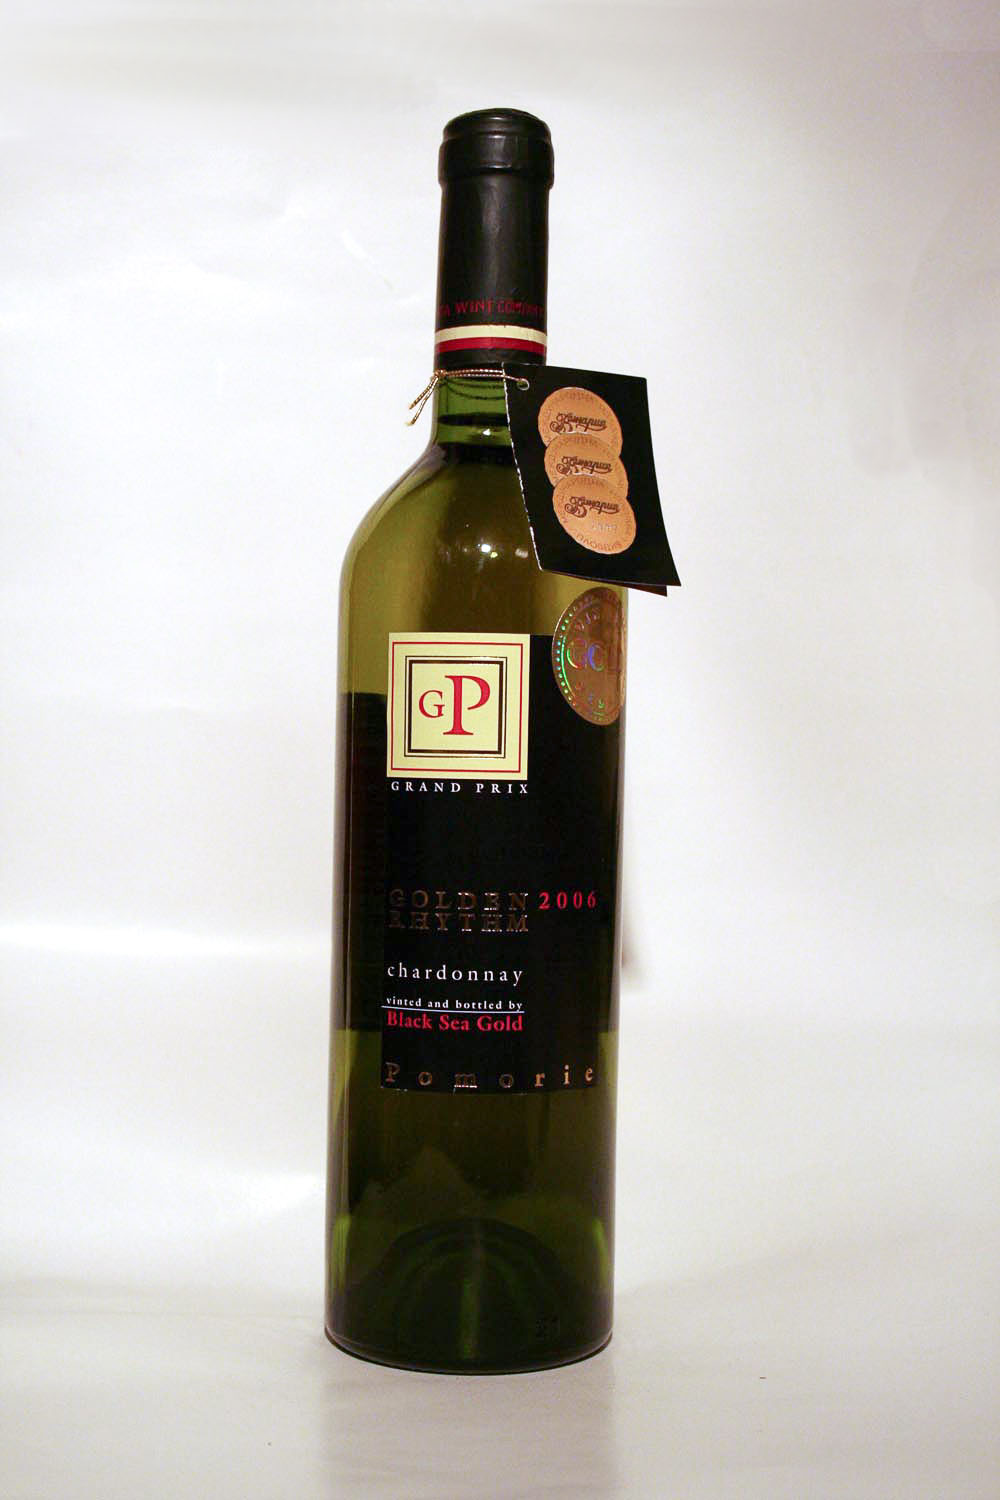 GP Golden Rhythm Chardonnay 2006